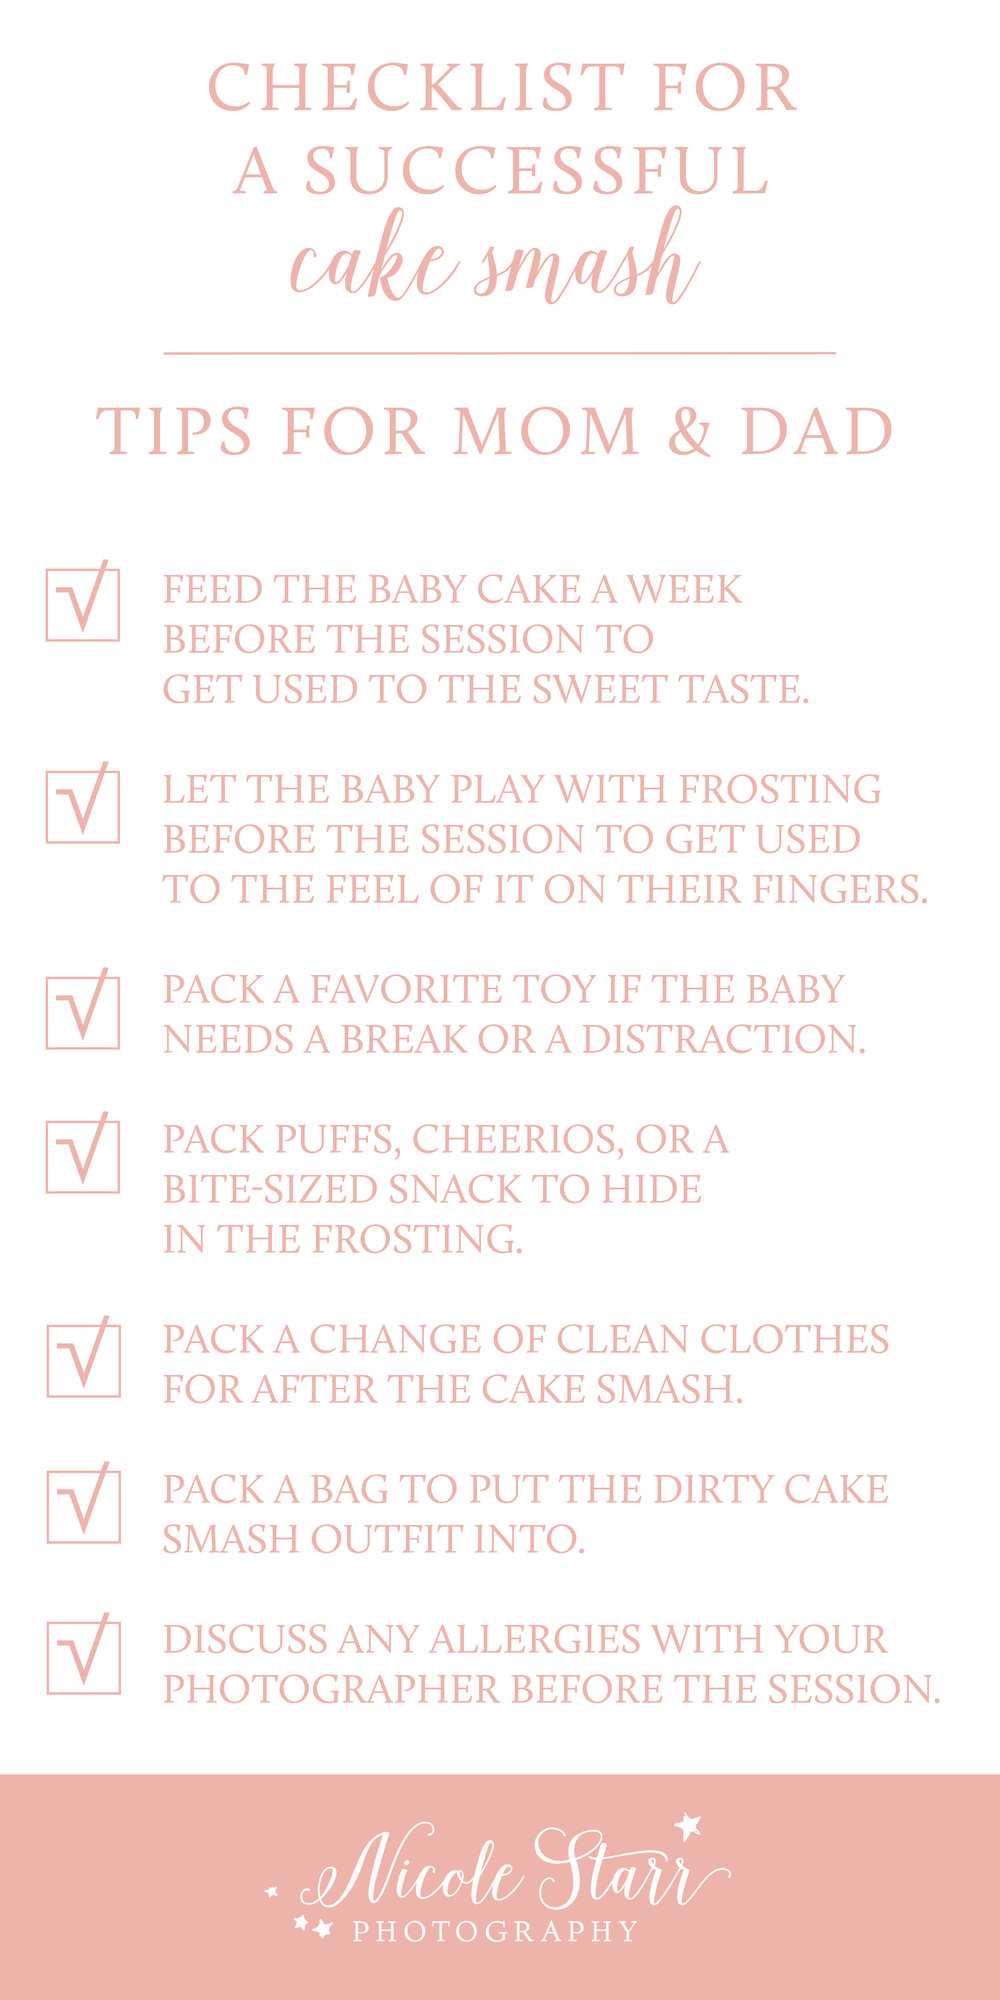 checklist for what to pack for your baby's cake smash photo shoot